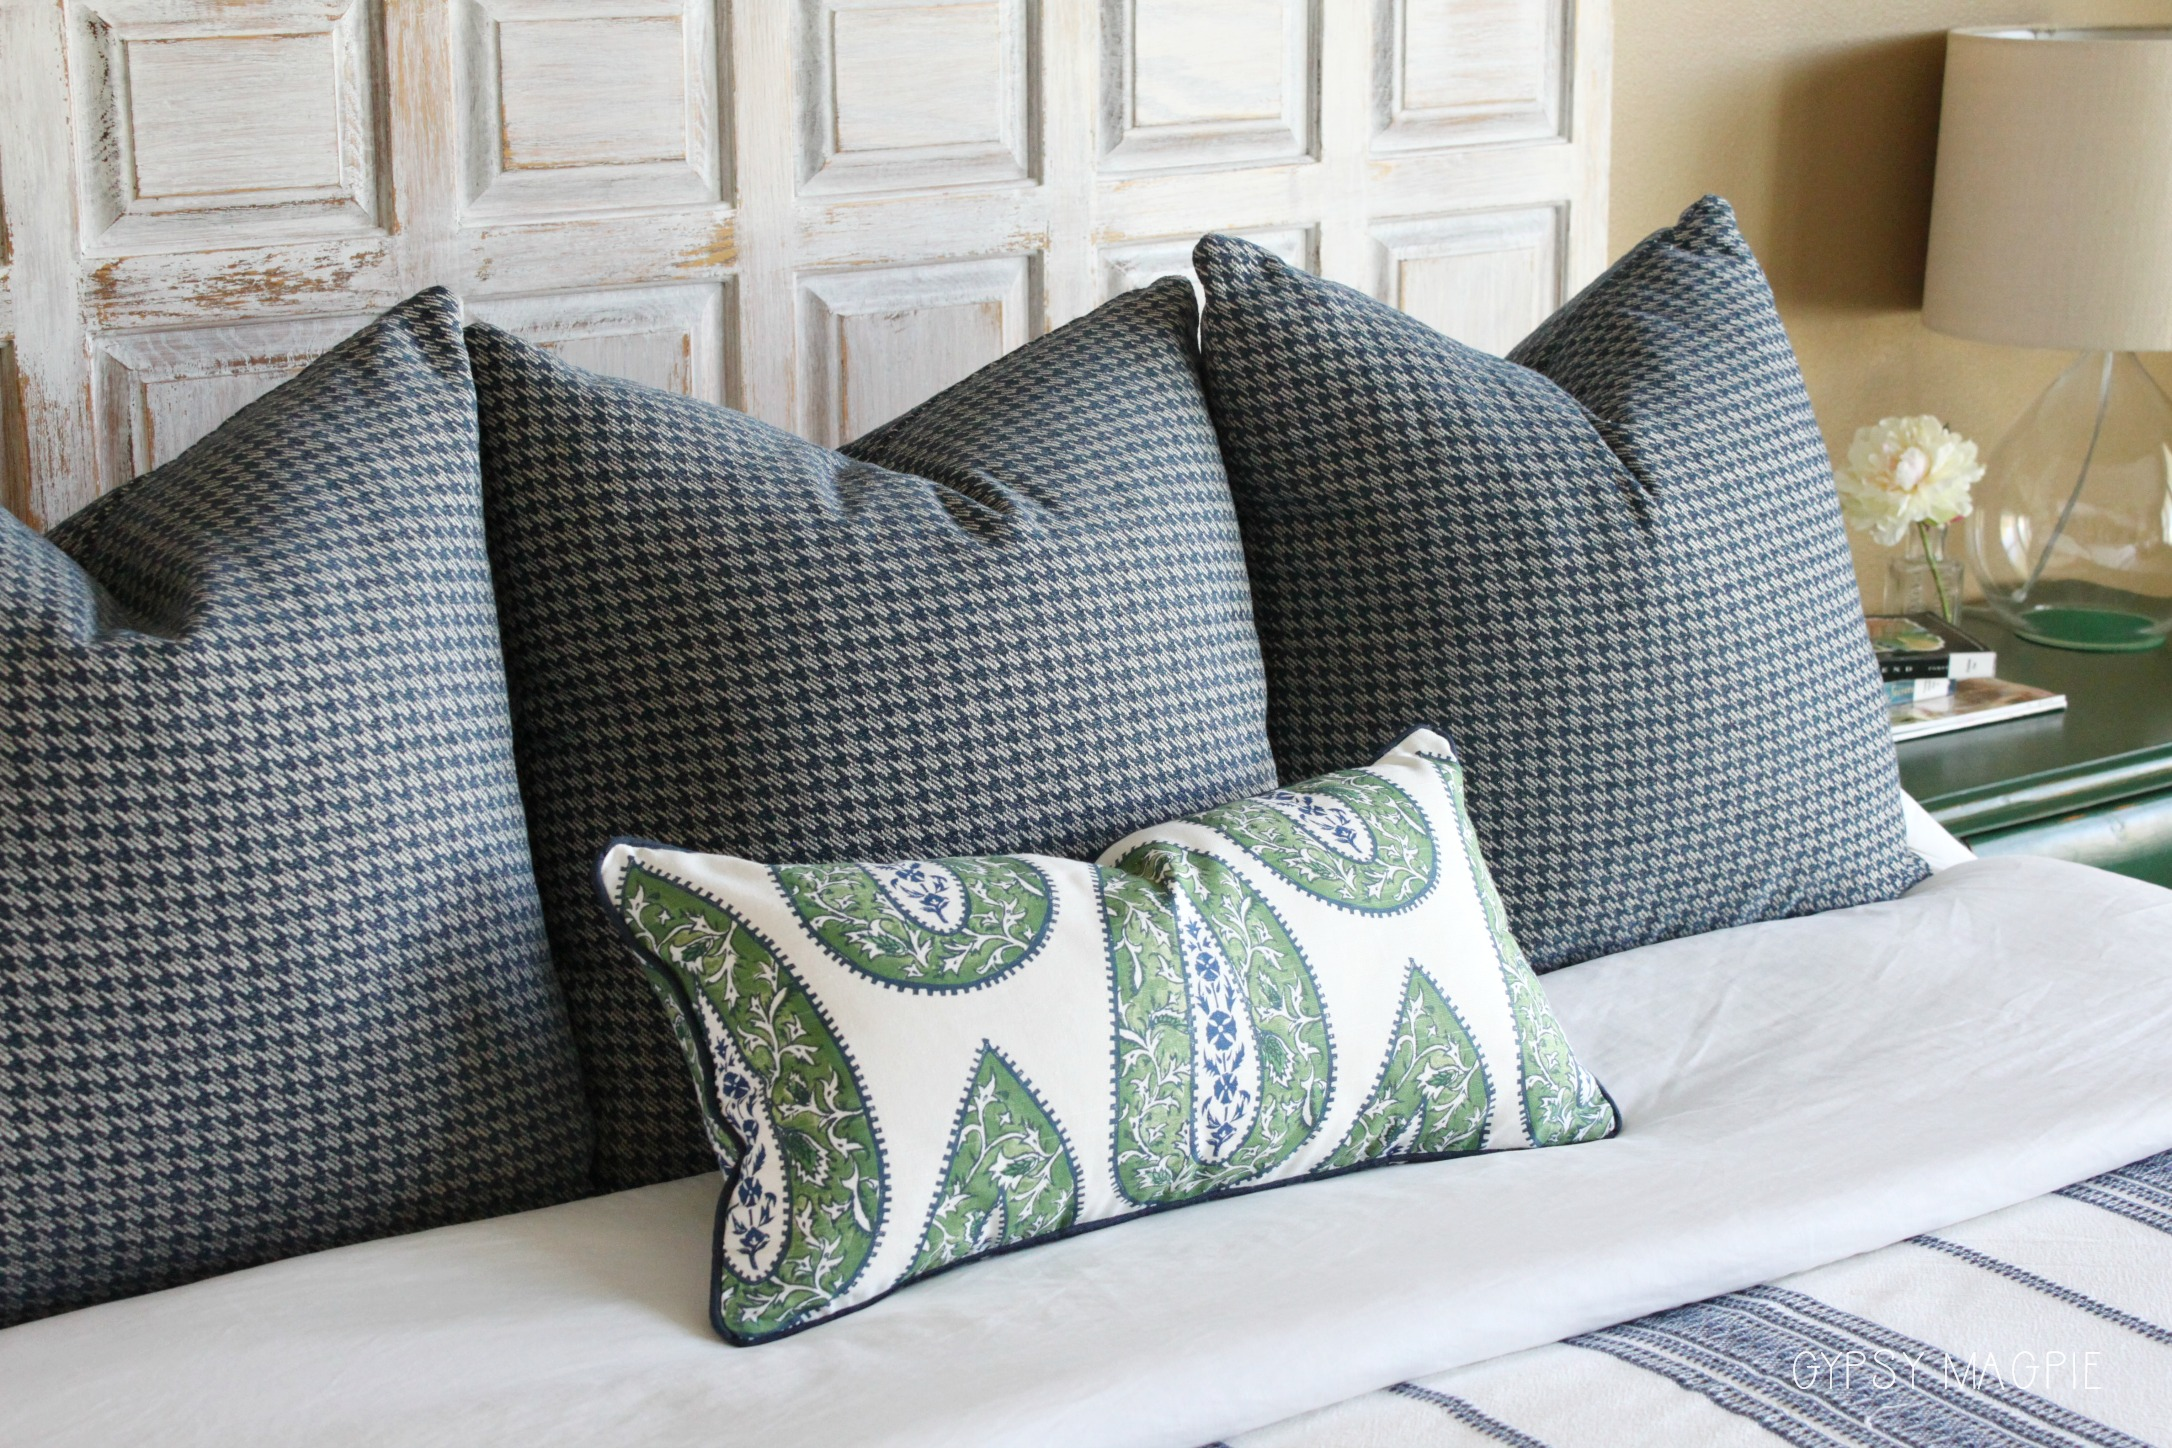 Mixed pattern pillows in navy and green | Gypsy Magpie